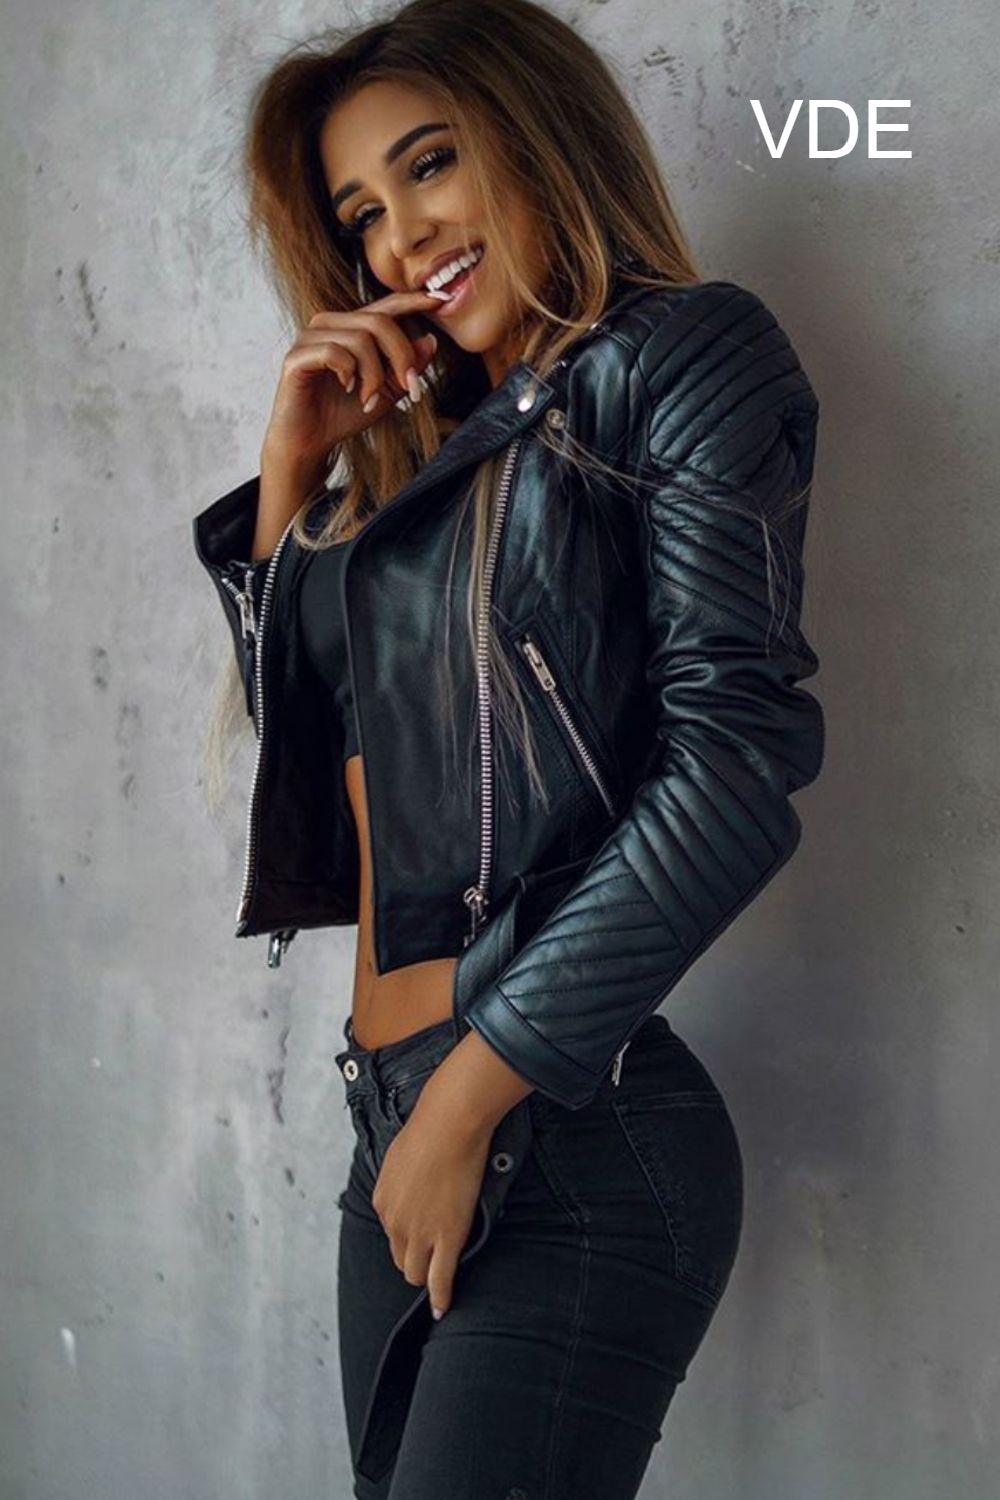 Leather Biker Jacket Outfit With Black Jeans Fashion Leather Jacket Girl Women [ 1500 x 1000 Pixel ]